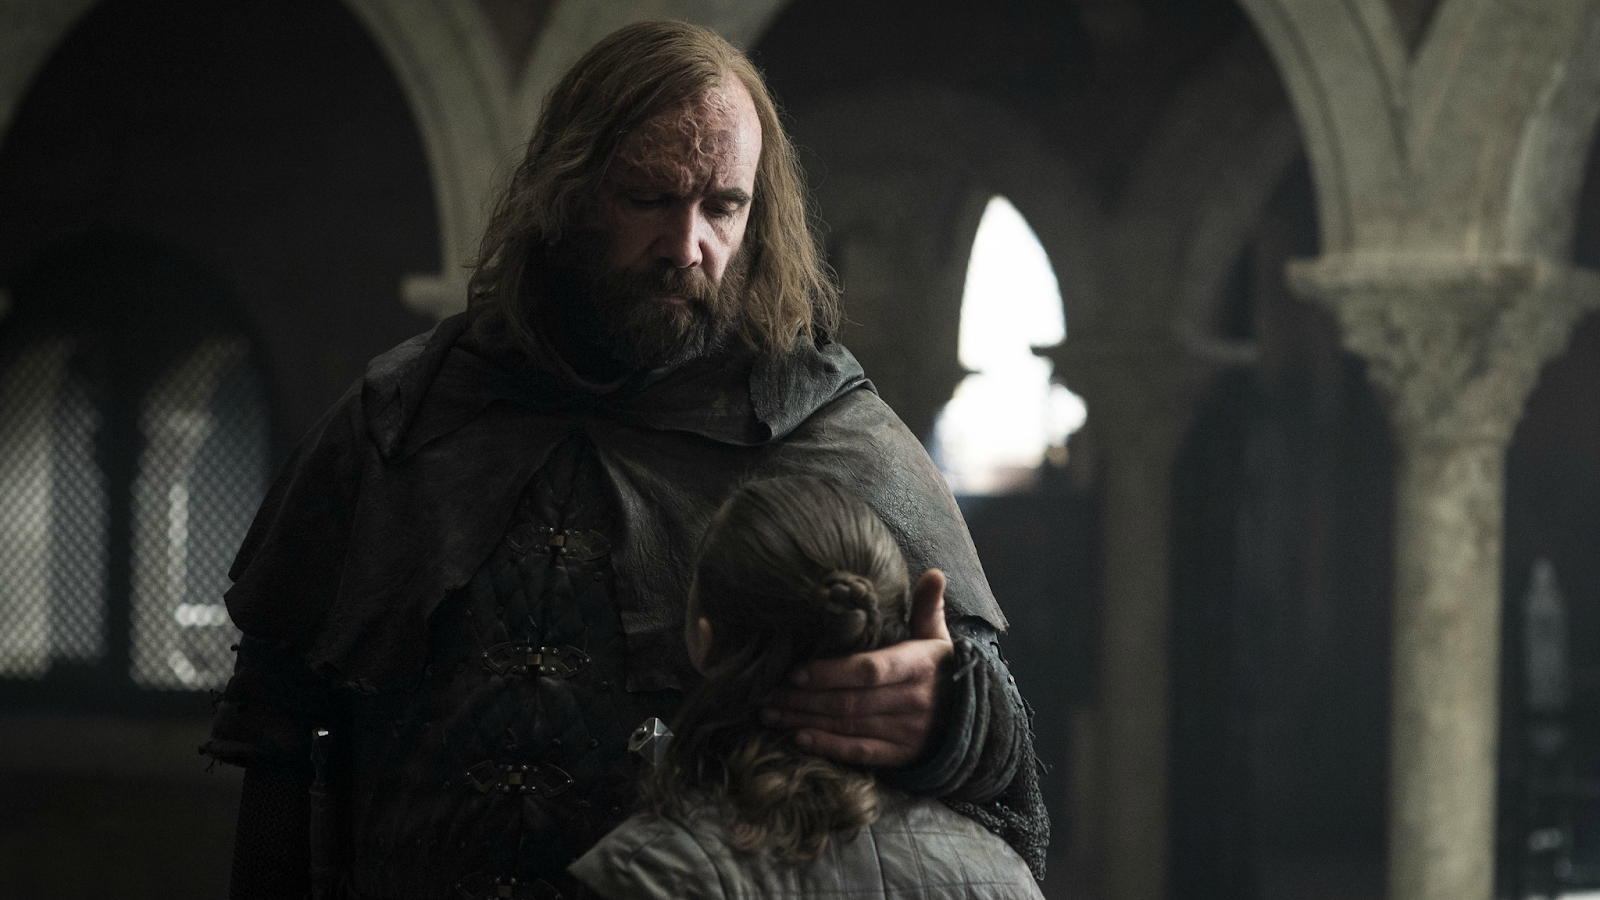 Eclectic Pop: Let's Discuss: Being A Wreck Over The Penultimate 'Game Of Thrones' Episode